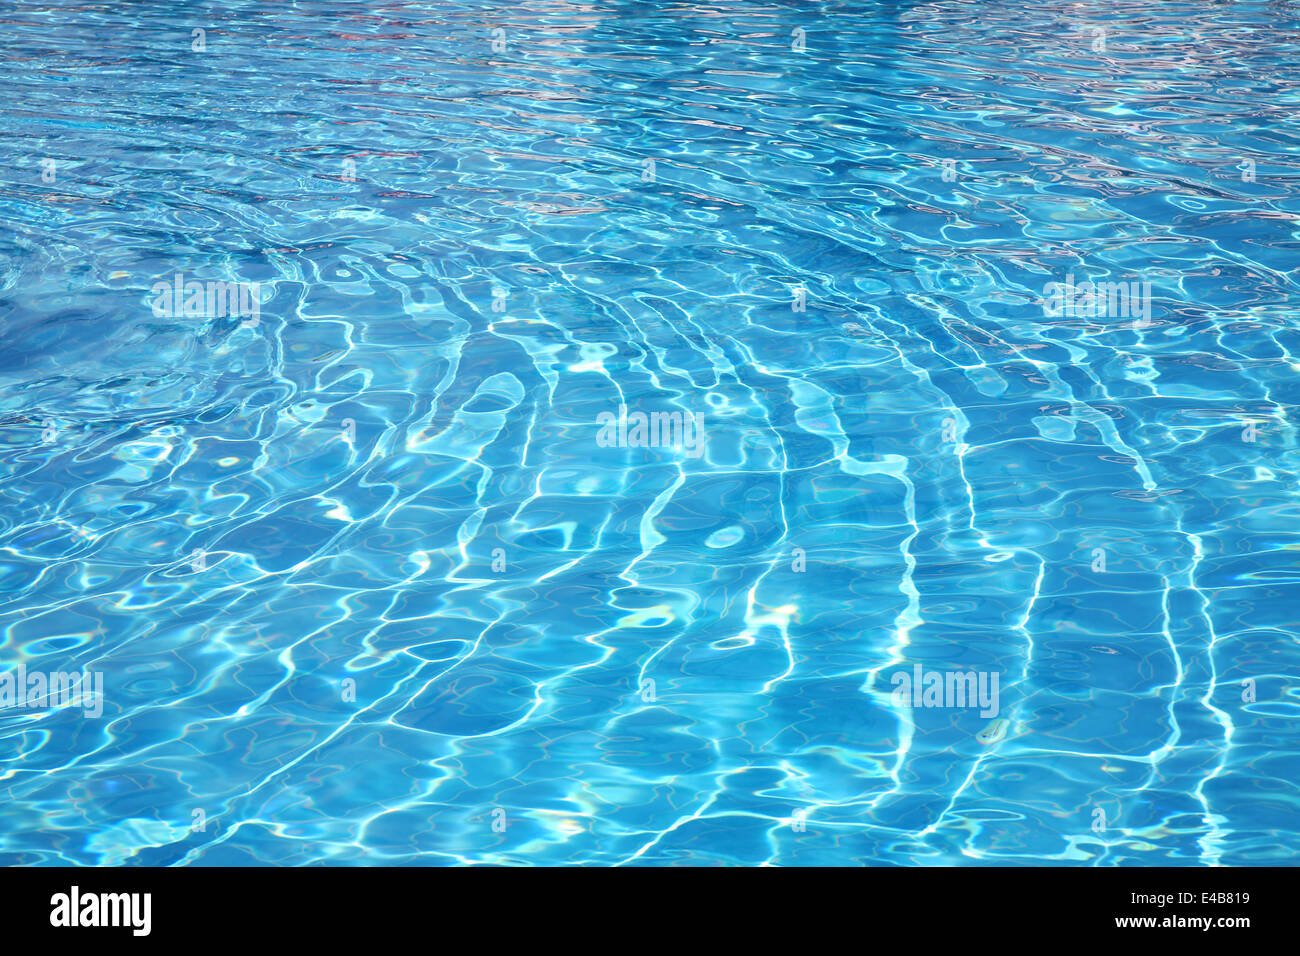 Pure blue transparent water - Stock Image